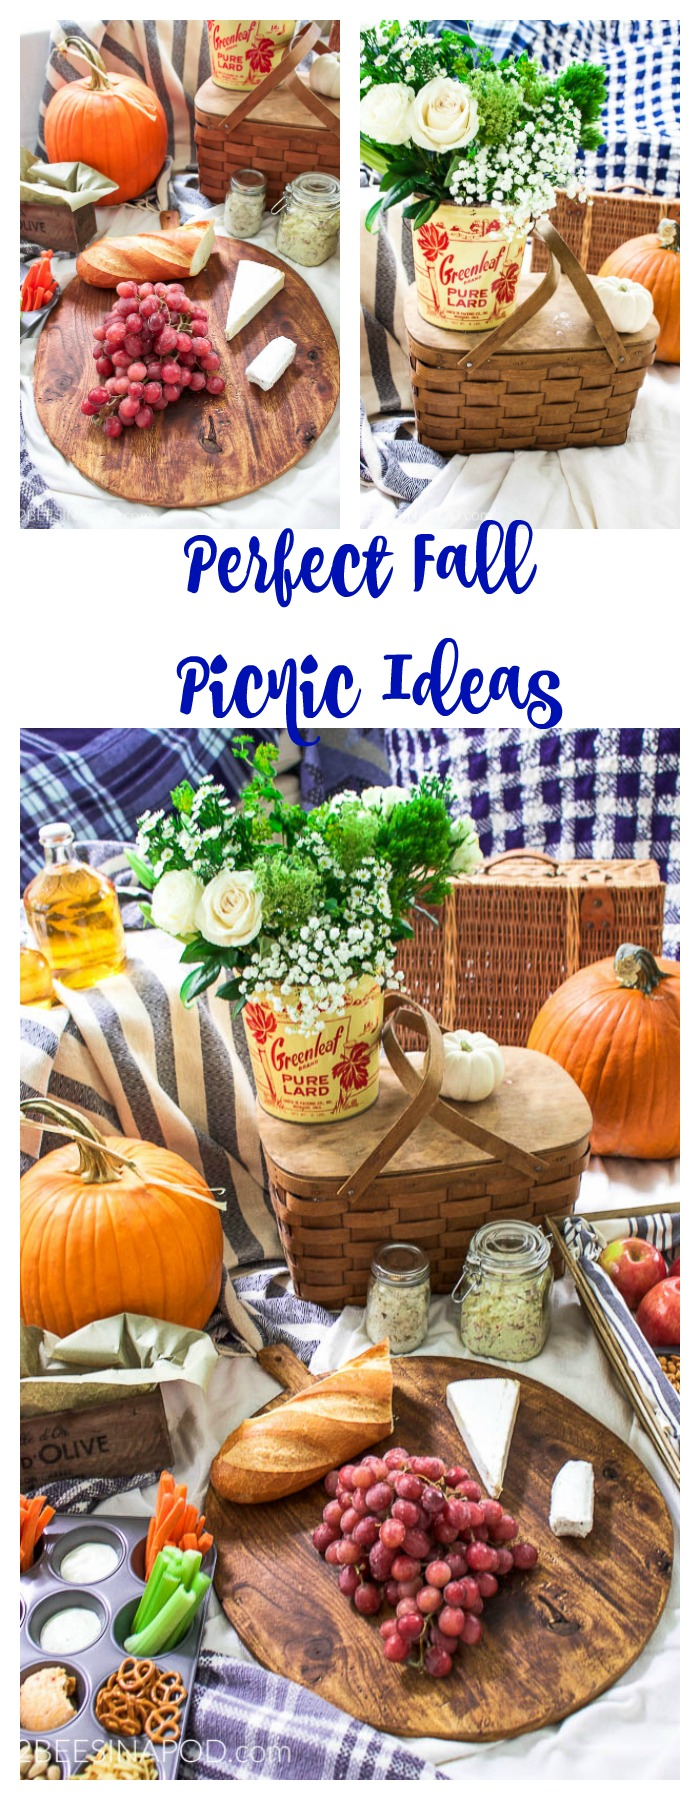 Perfect Fall Picnic Ideas - you can't go wrong with a fall picnic and these great ideas.